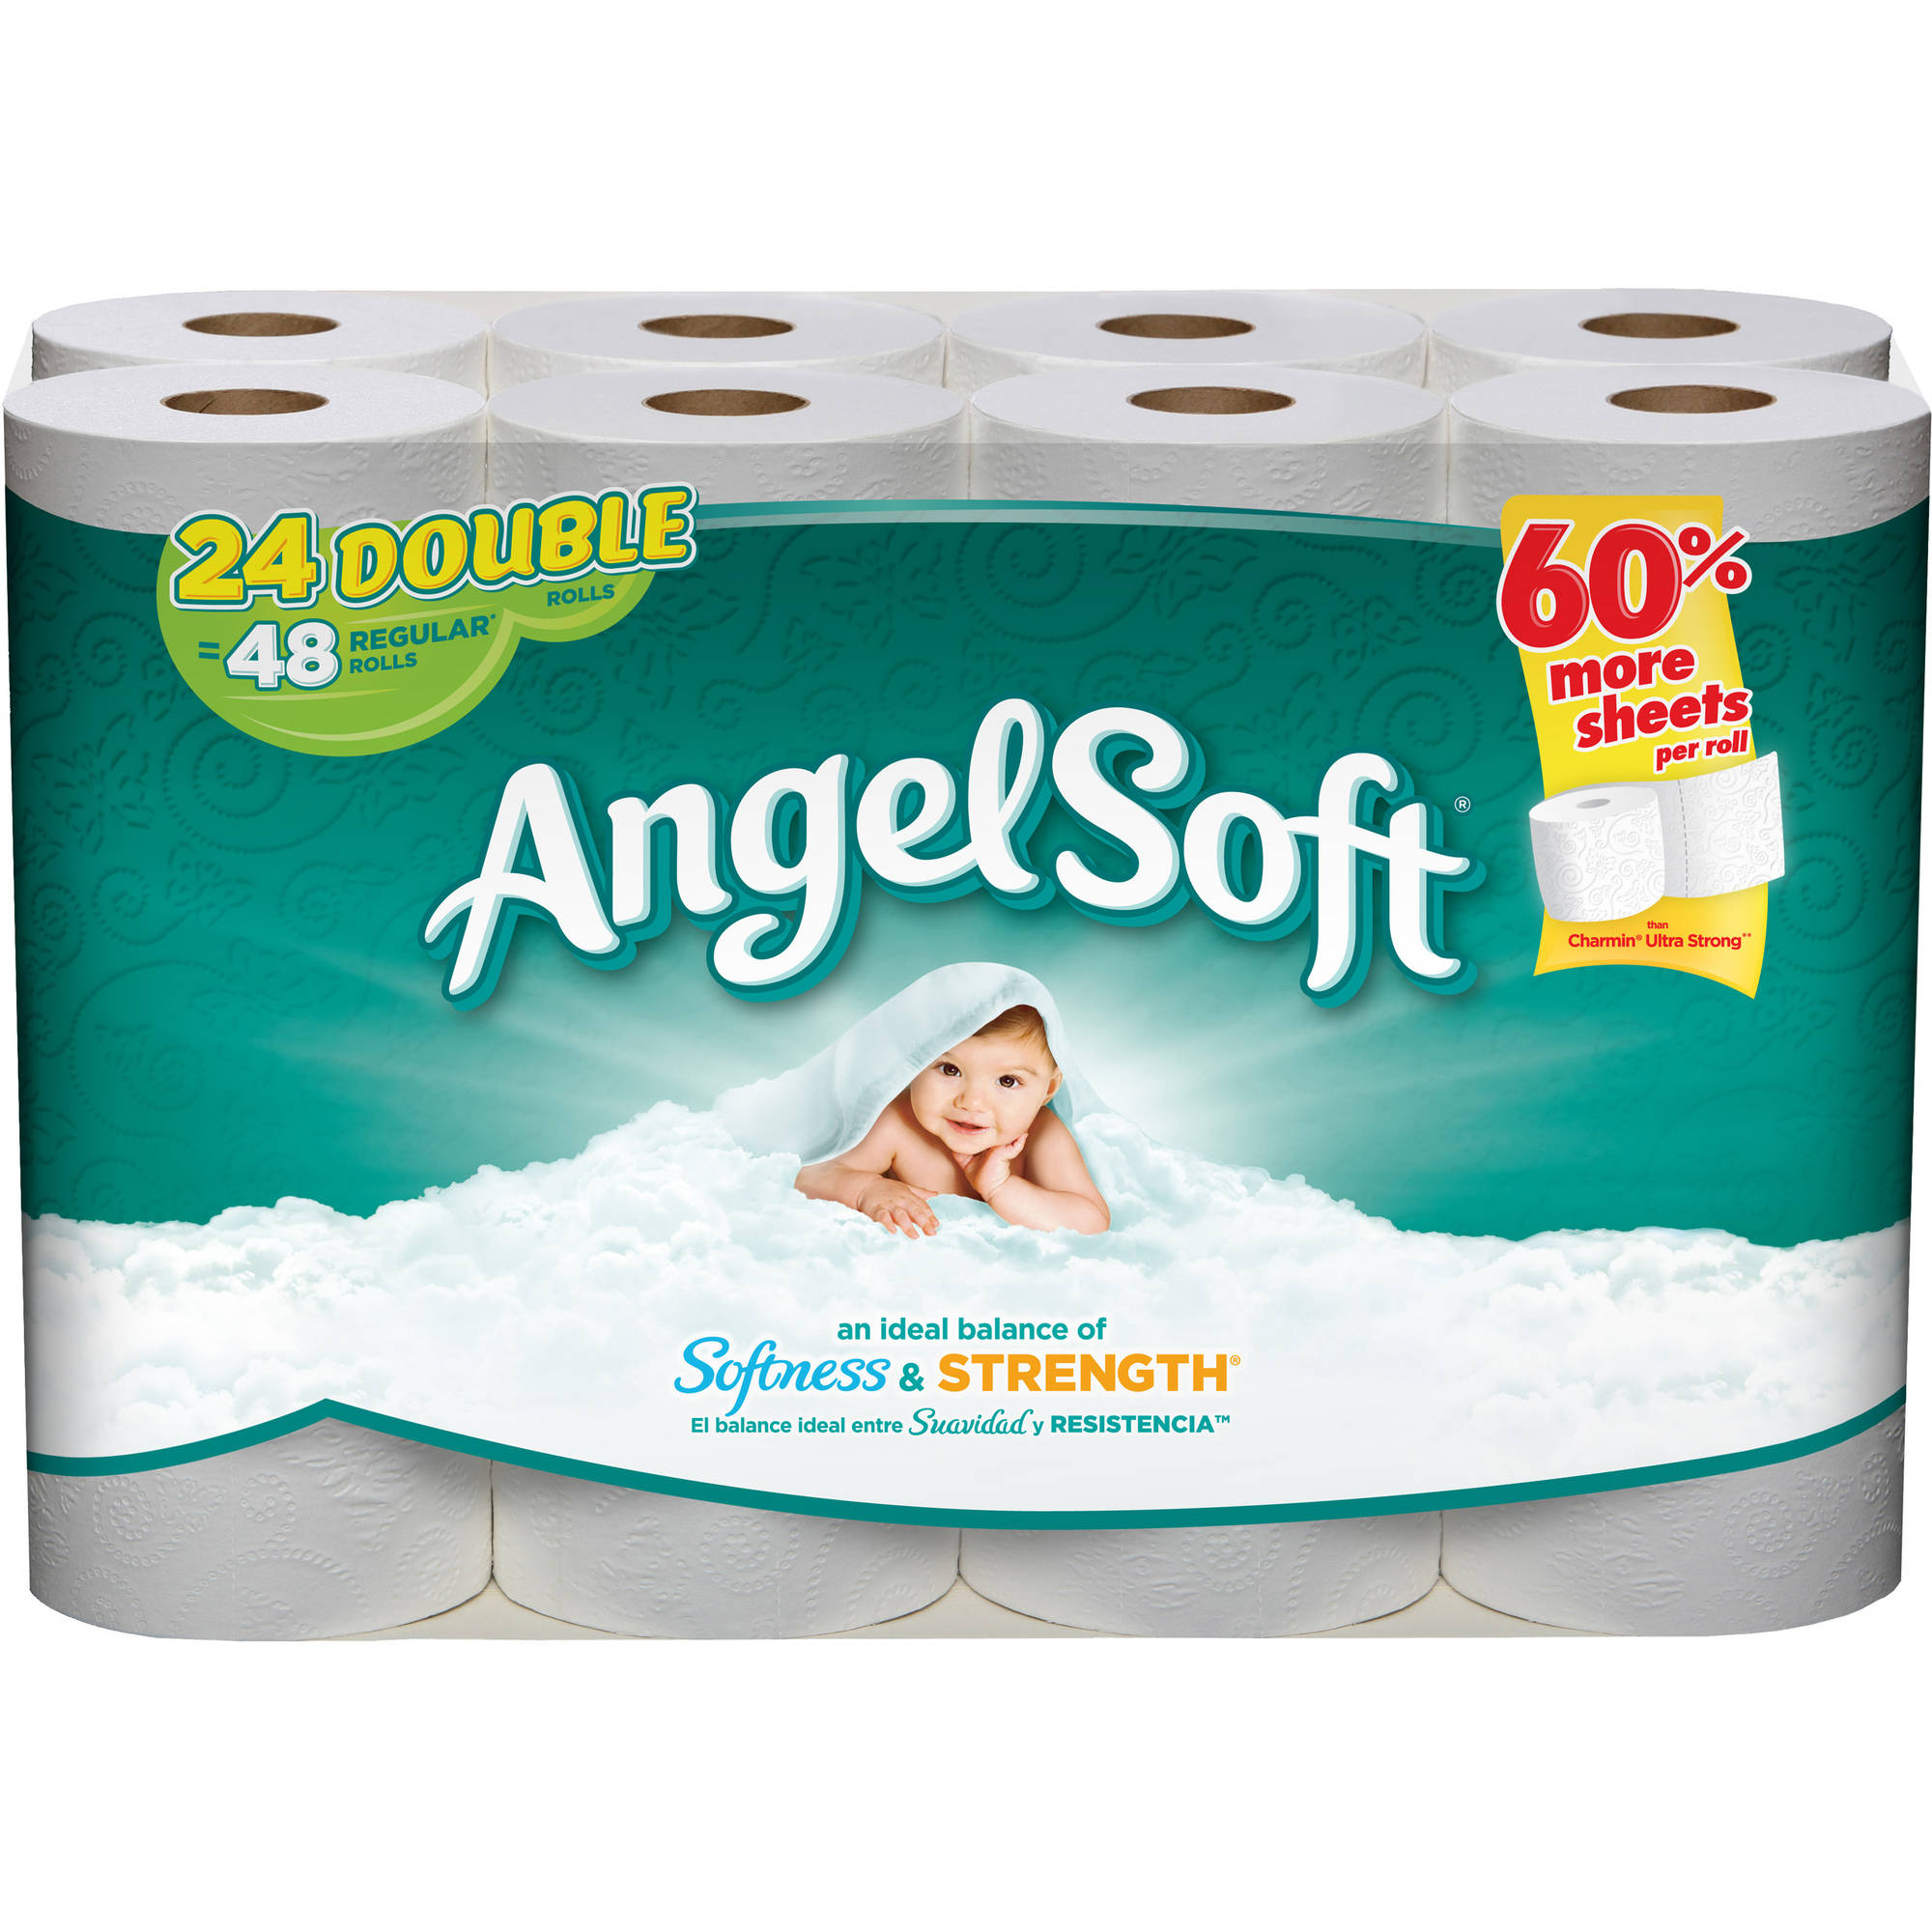 Angel Soft Toilet Paper, 24 Double Rolls, Bath Tissue